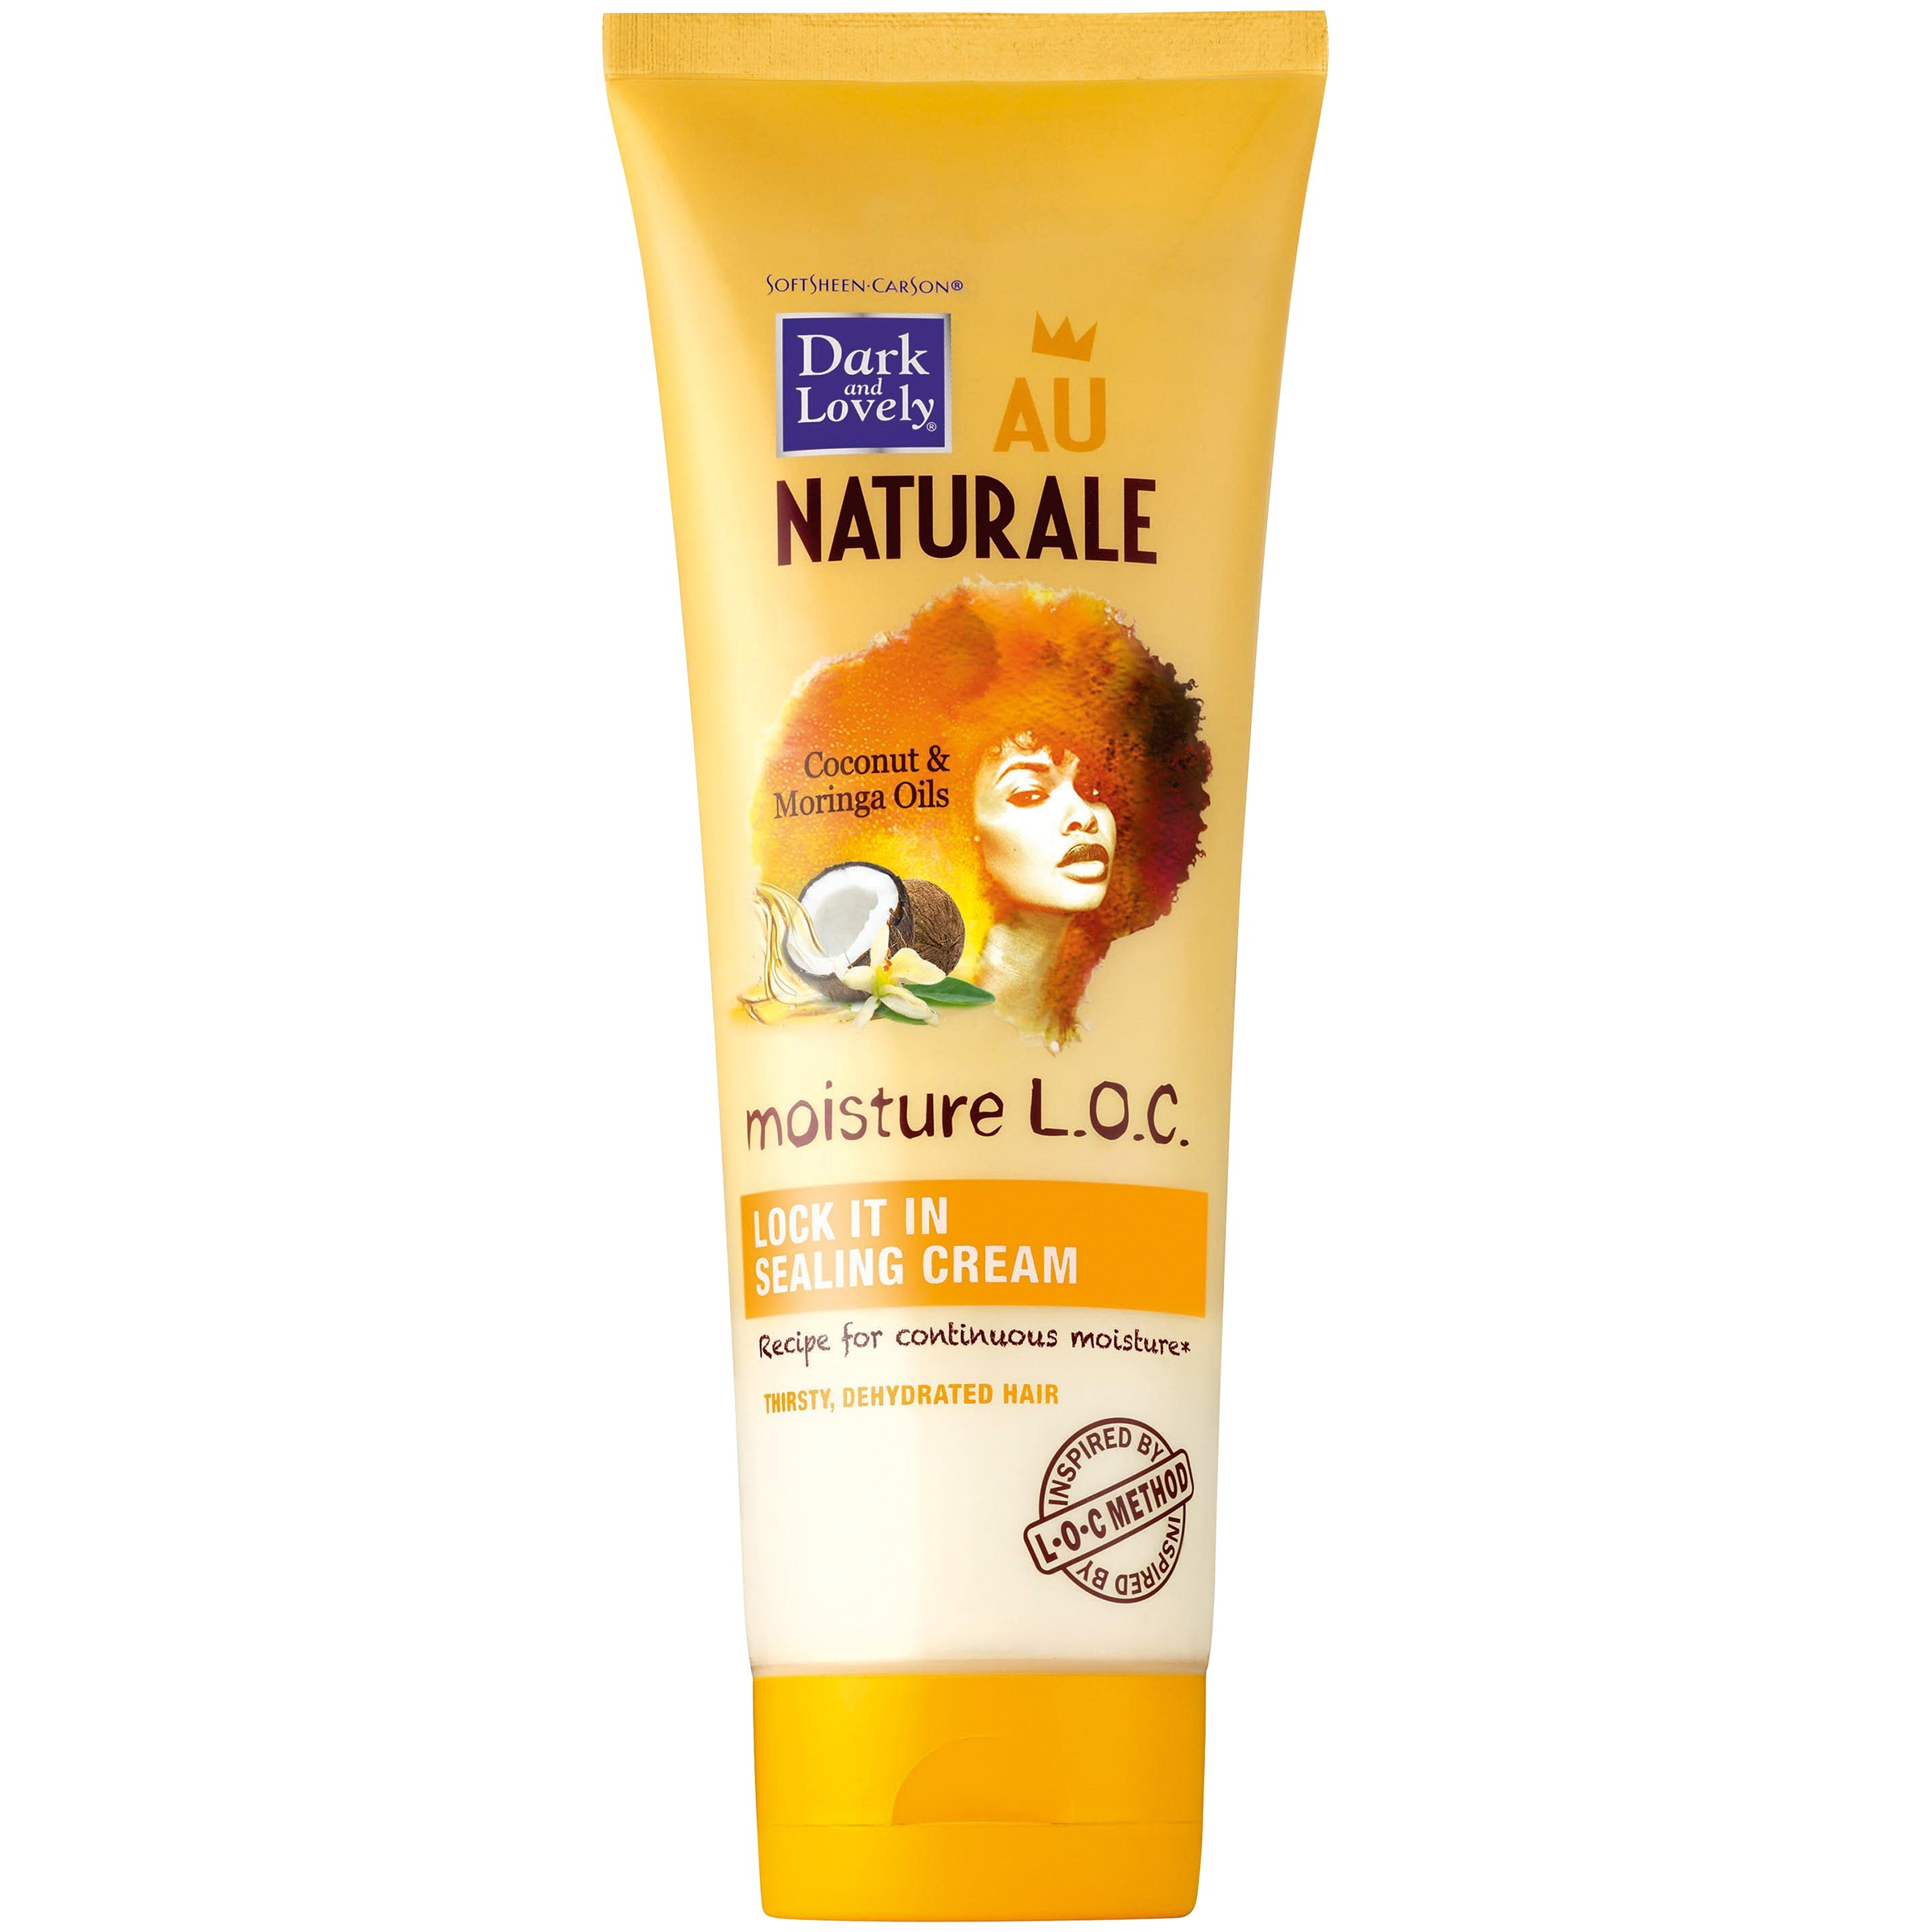 SoftSheen-Carson Dark and Lovely Au Naturale Moisture L.O.C. Lock It In Sealing Cream